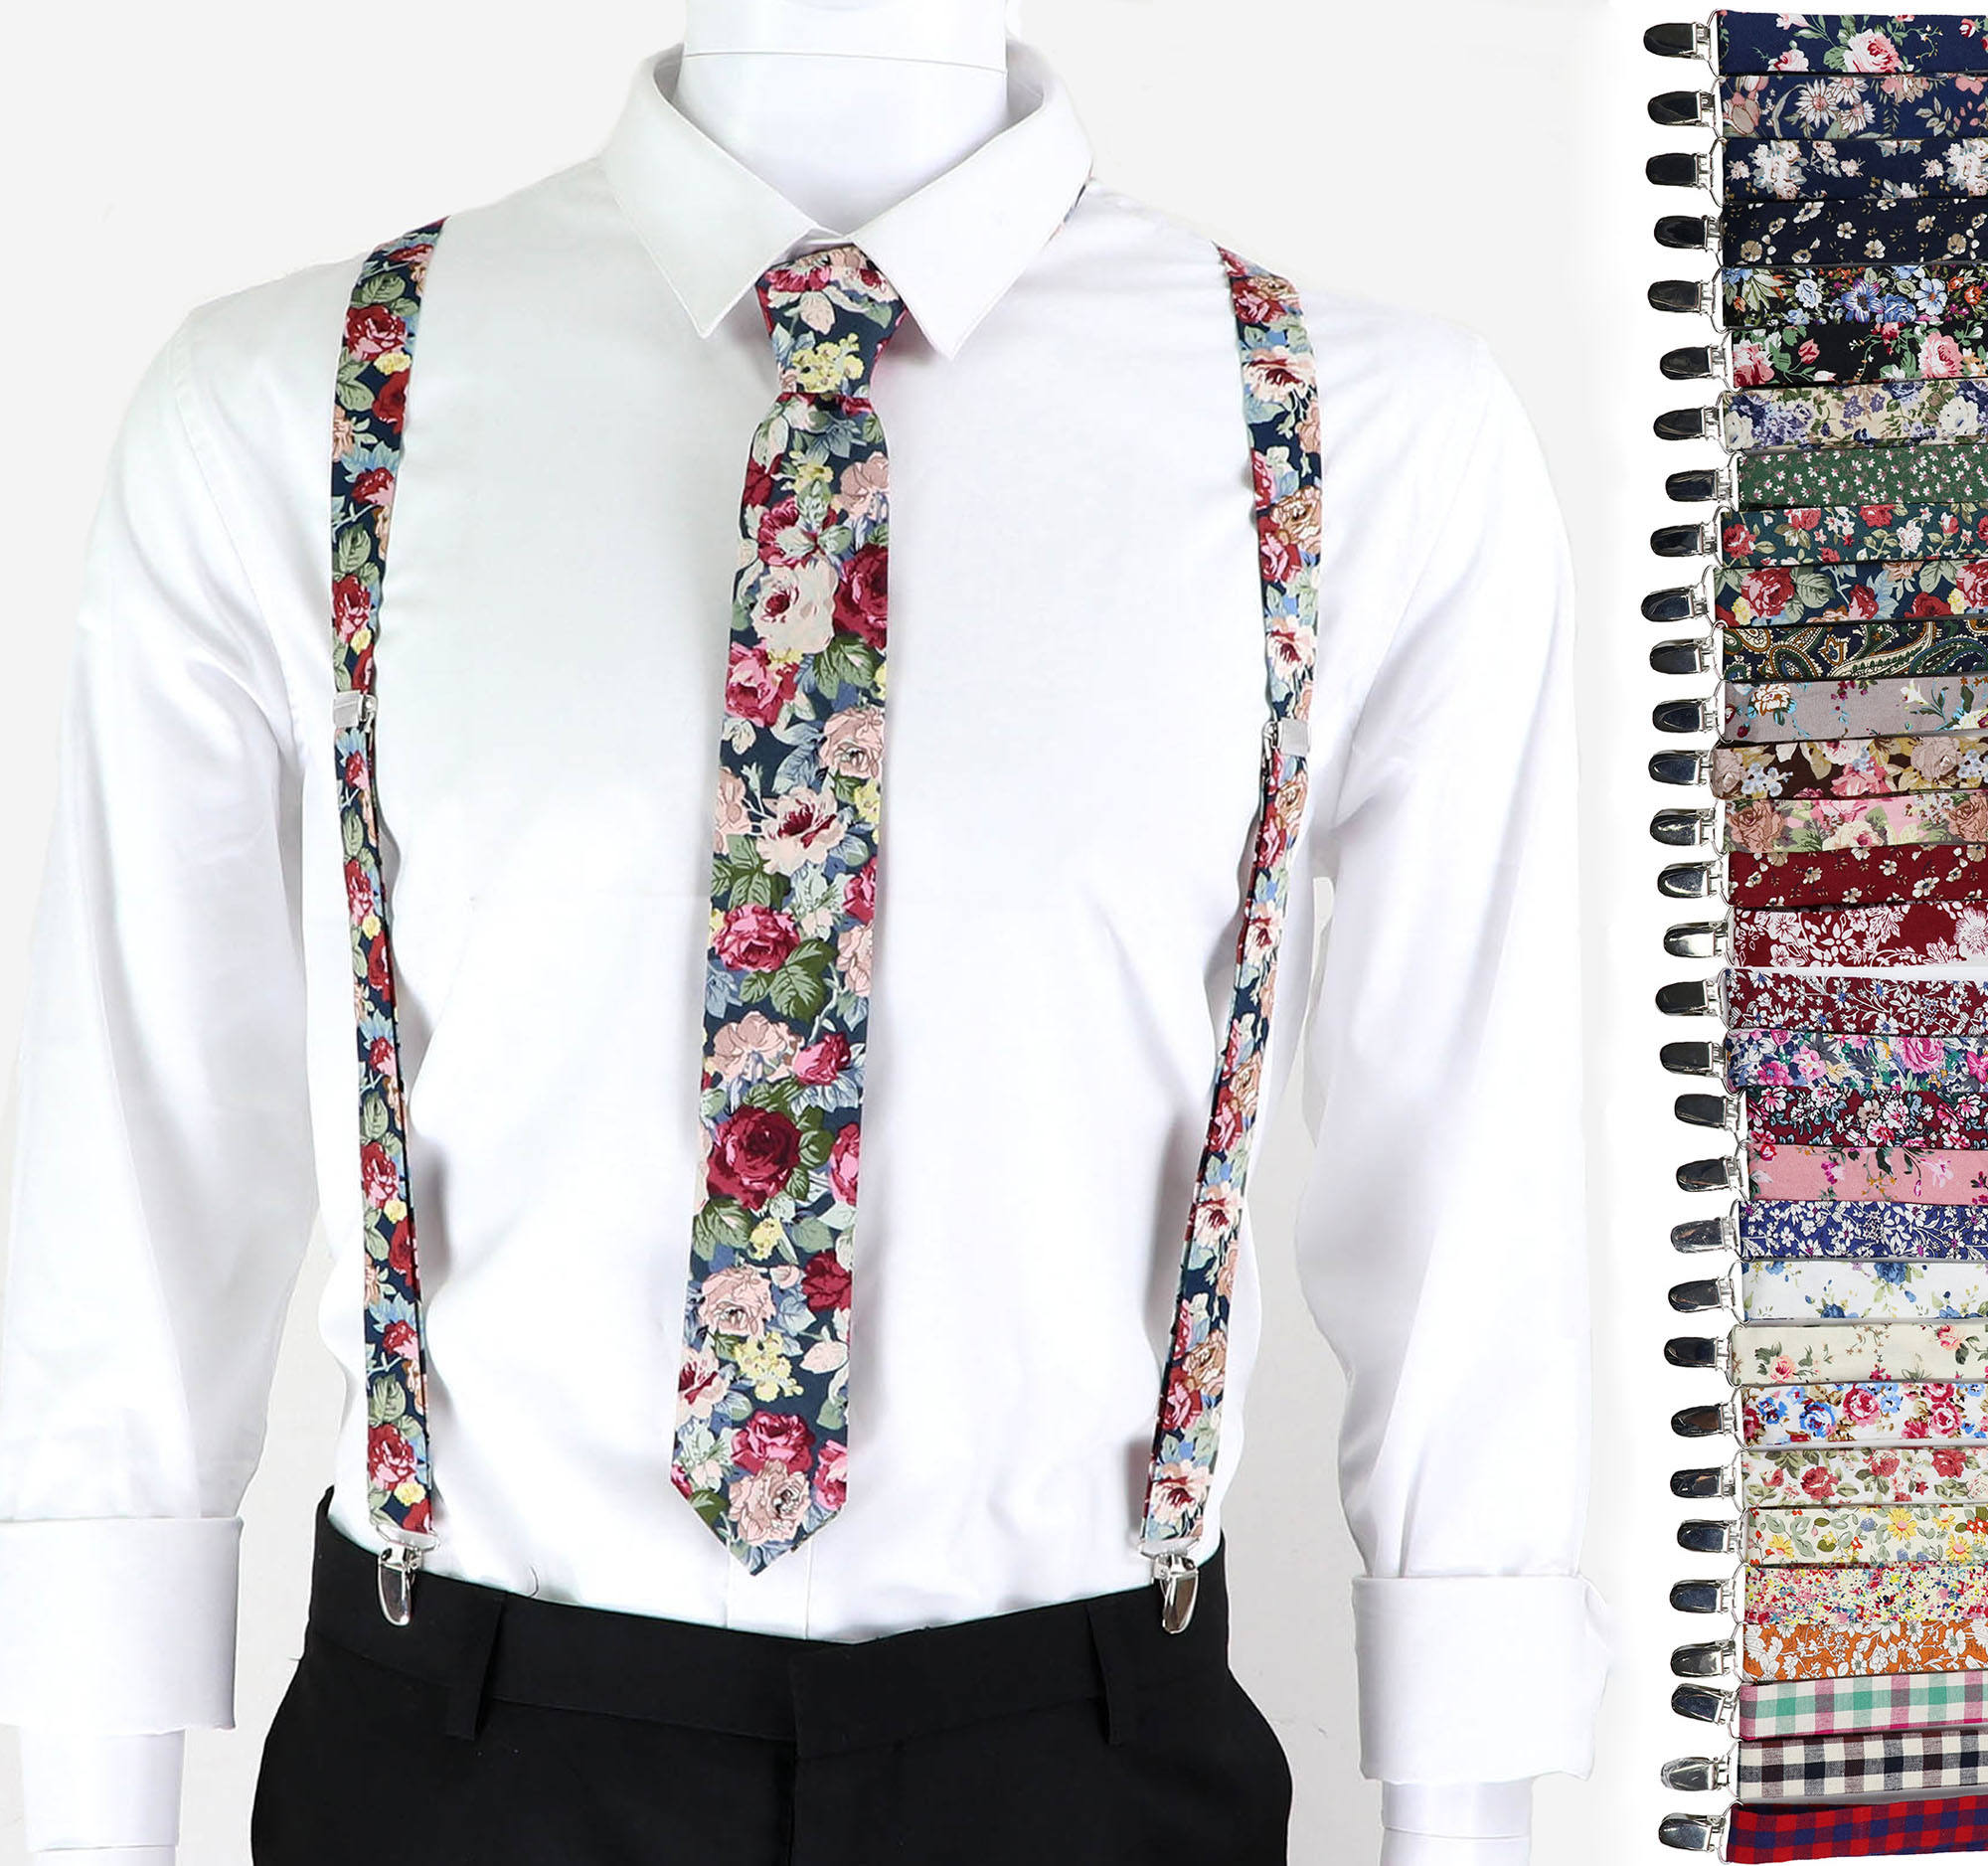 2.5cm Floral Cotton Suspenders Tie Sets Men Women Braces Adjustable Straps Male Pants Jeans Female Skirt Shirt Accessories Gift